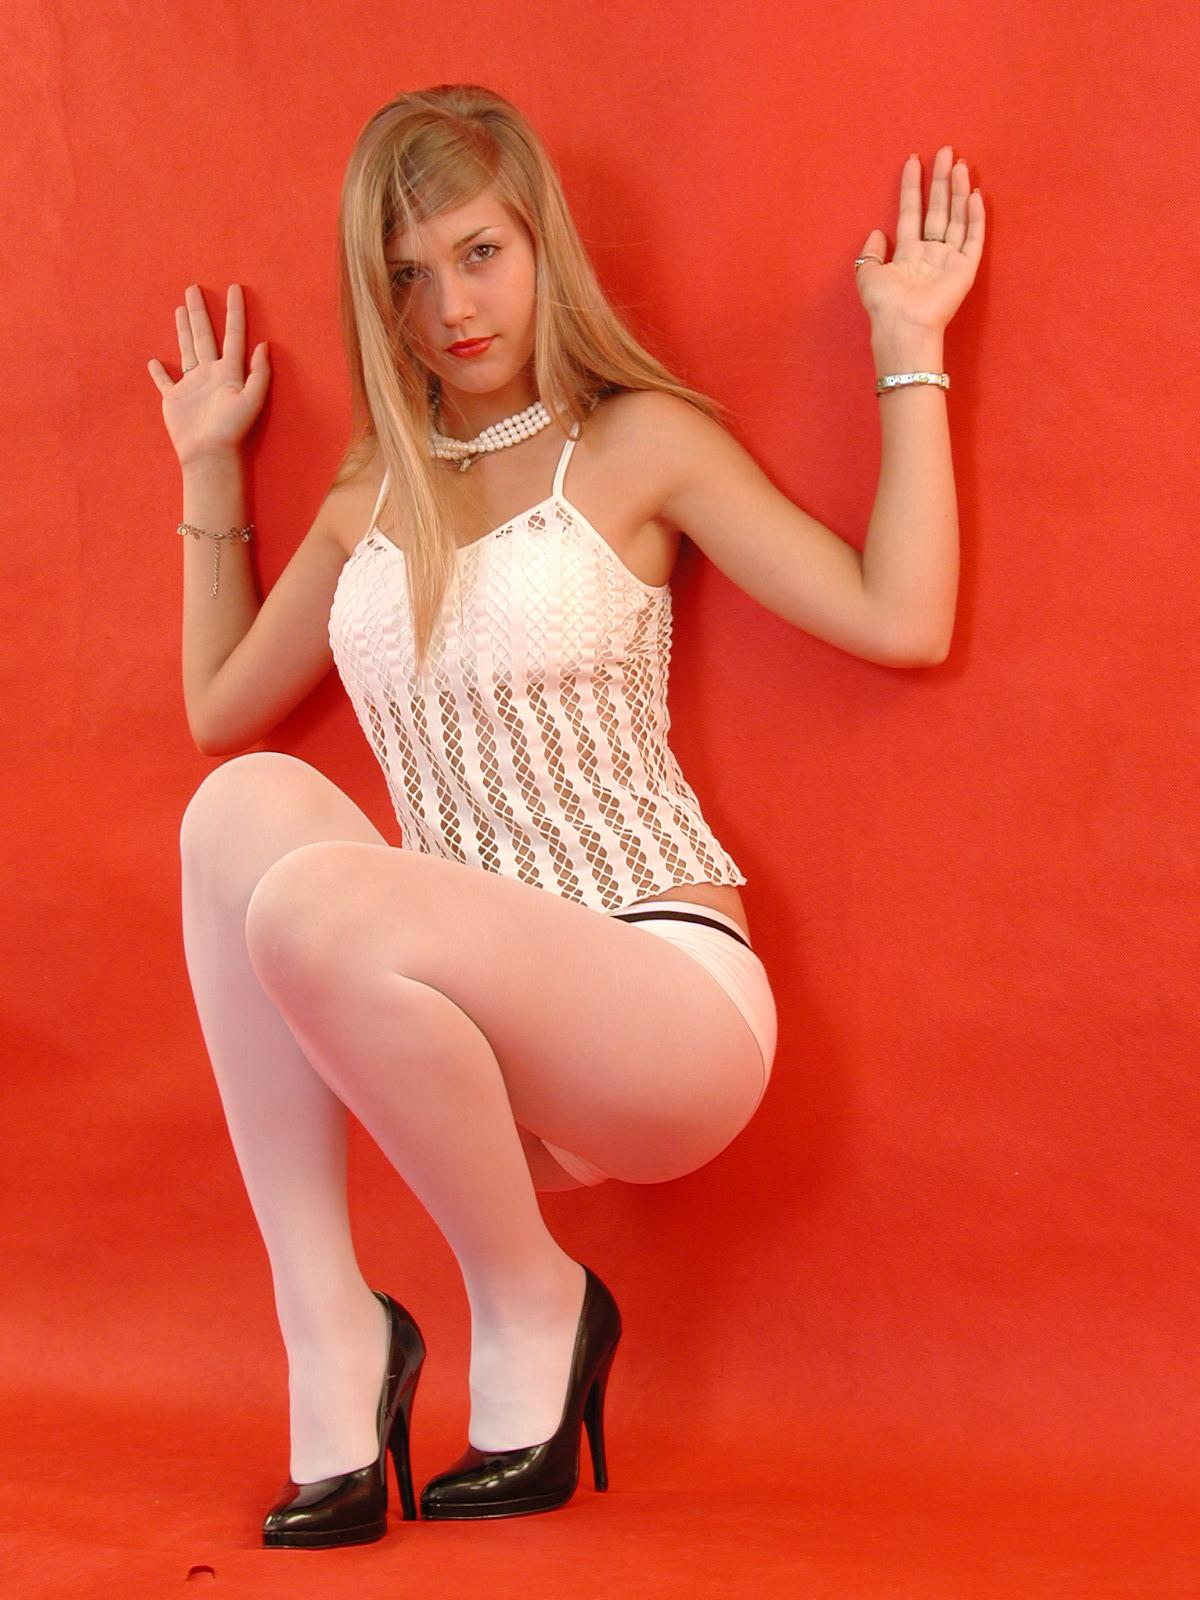 She Vlad models pantyhose you